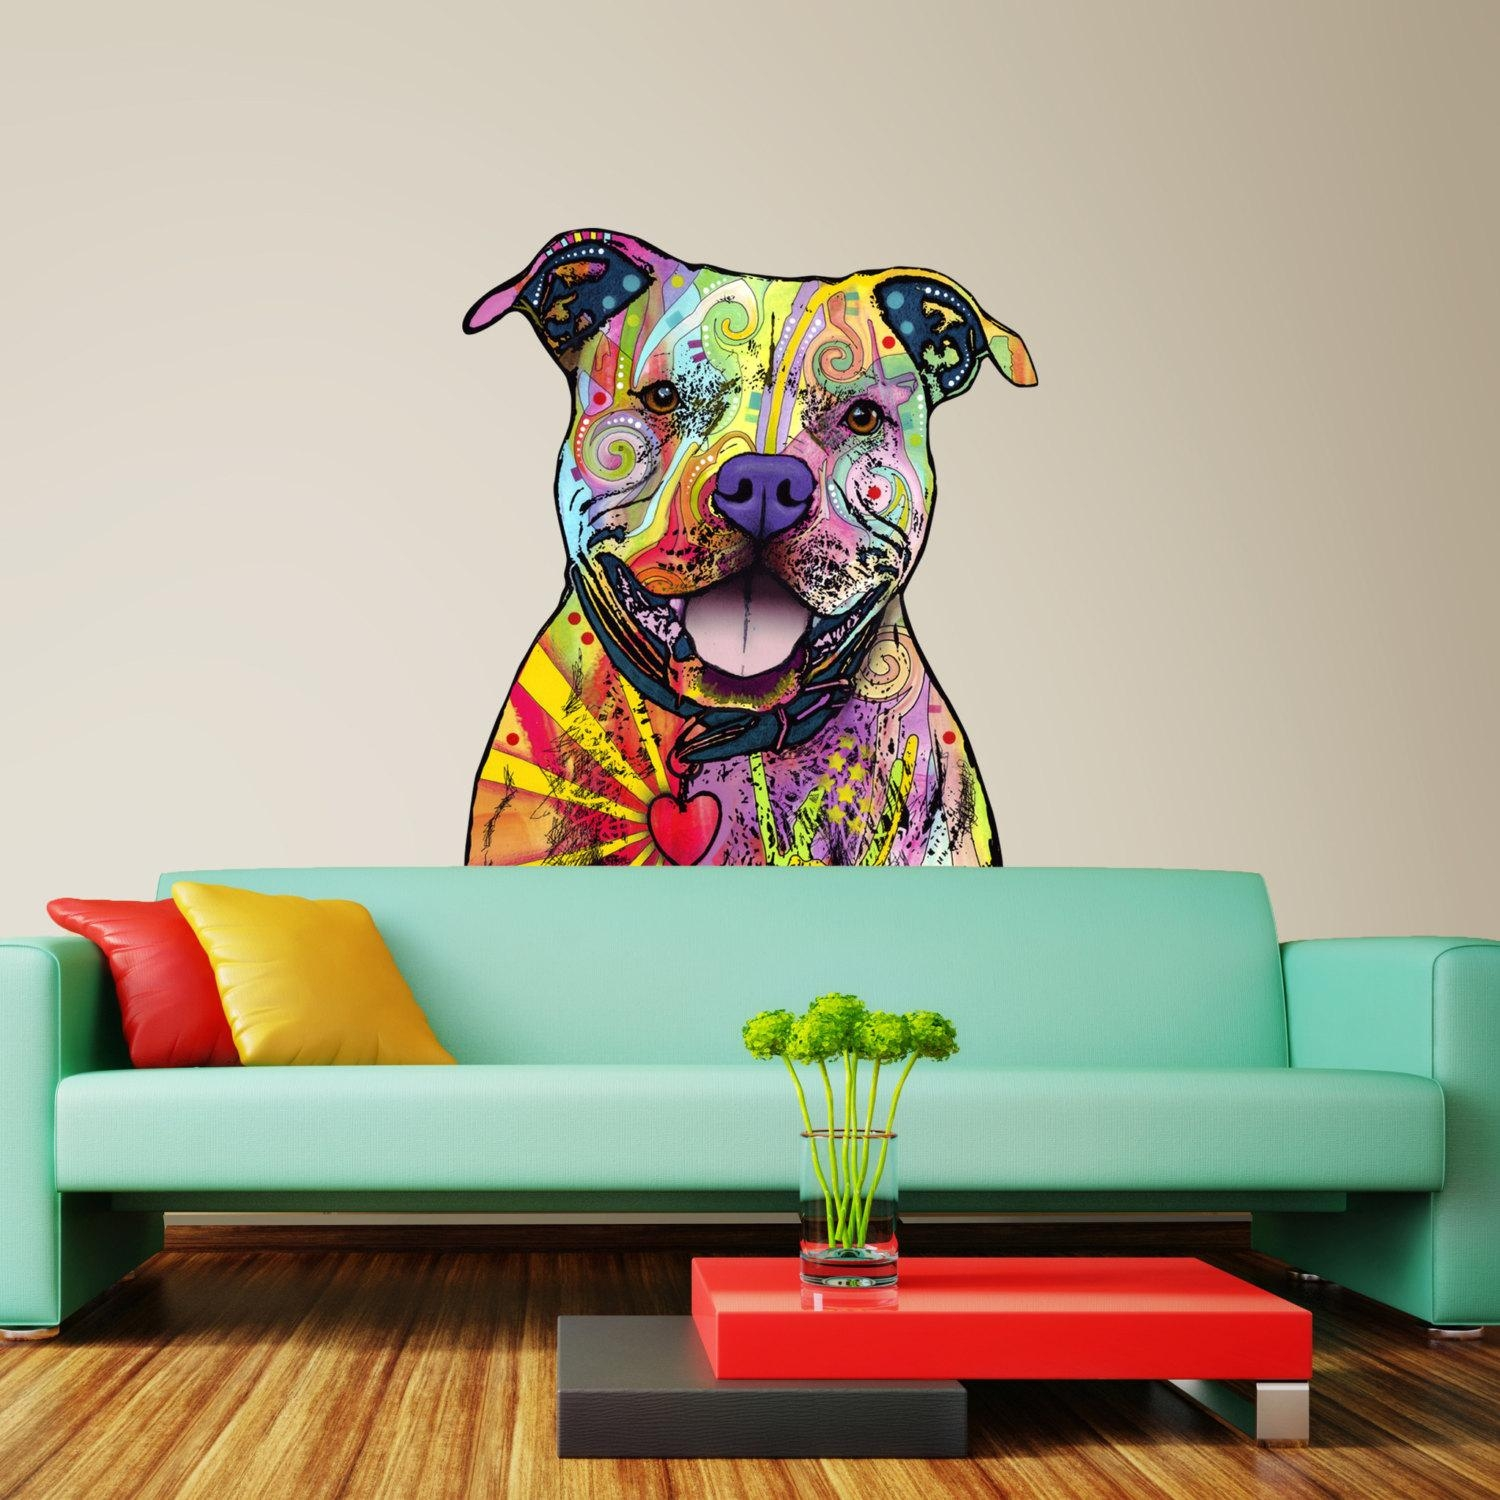 Pit Bull Wall Sticker Cut Out Dean Russo Pop Art Within Pitbull Wall Art (View 3 of 20)